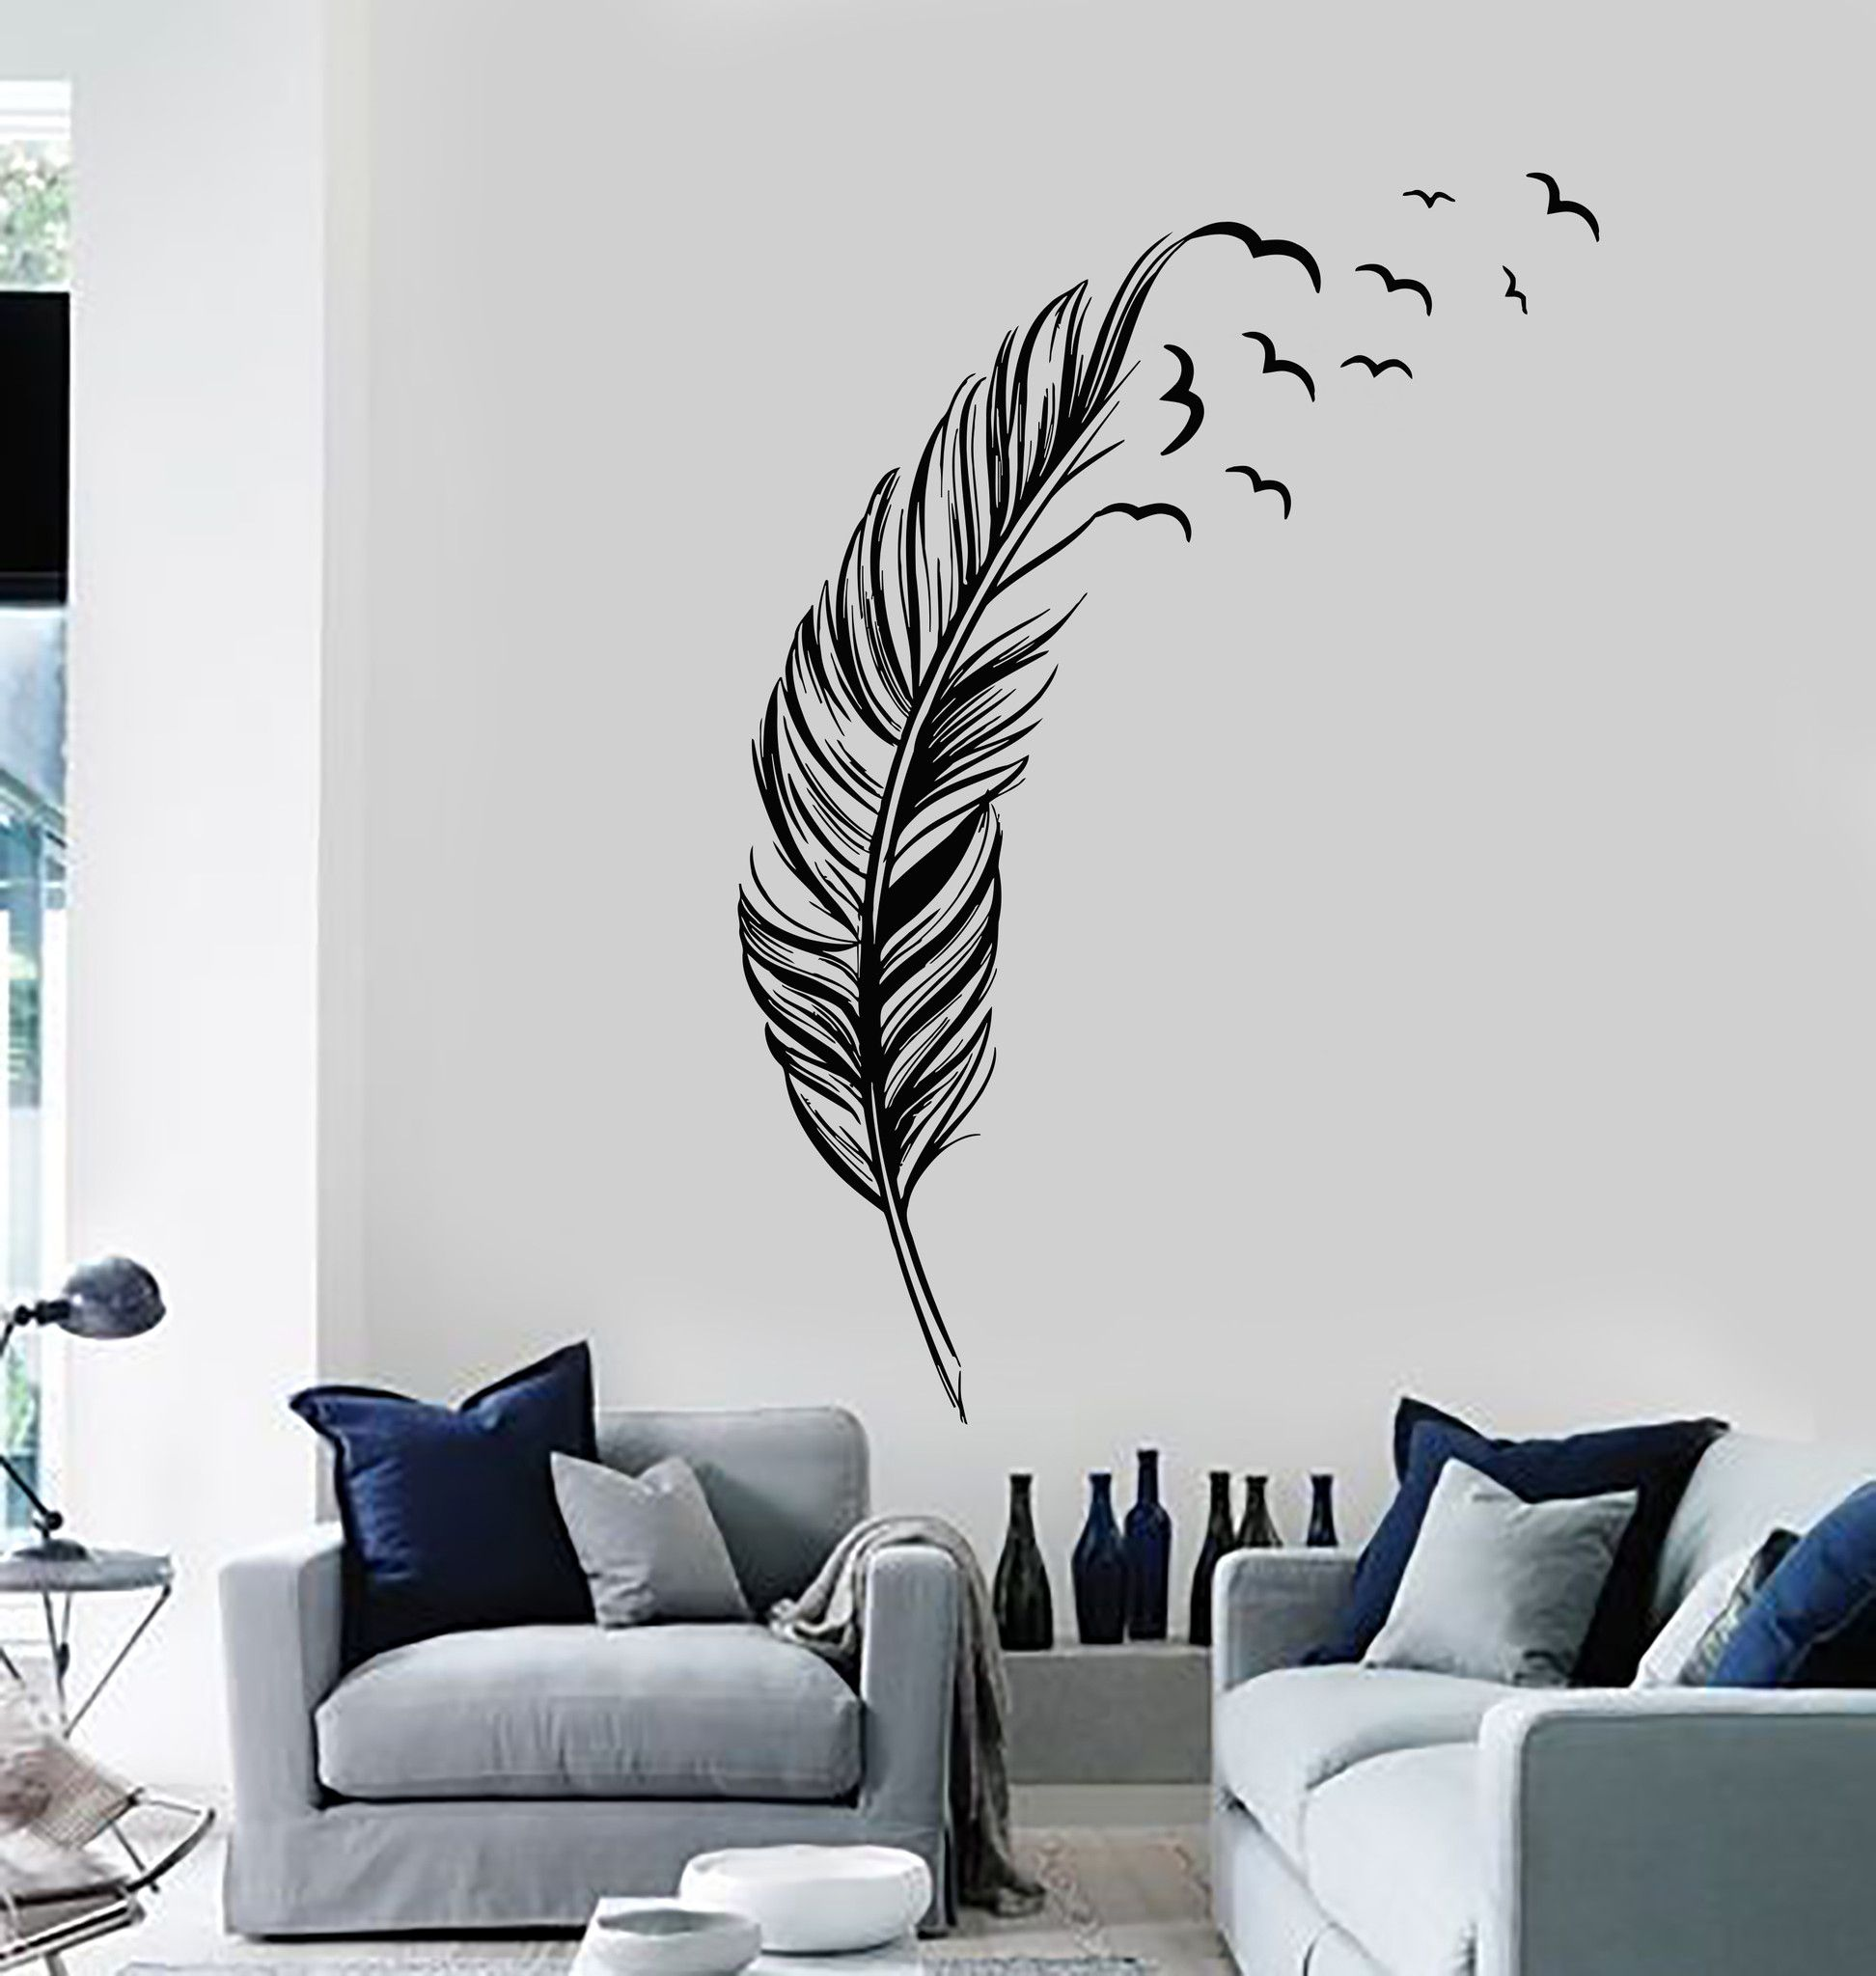 Best Vinyl Wall Decal Feather Birds Bedroom Home Decoration 400 x 300